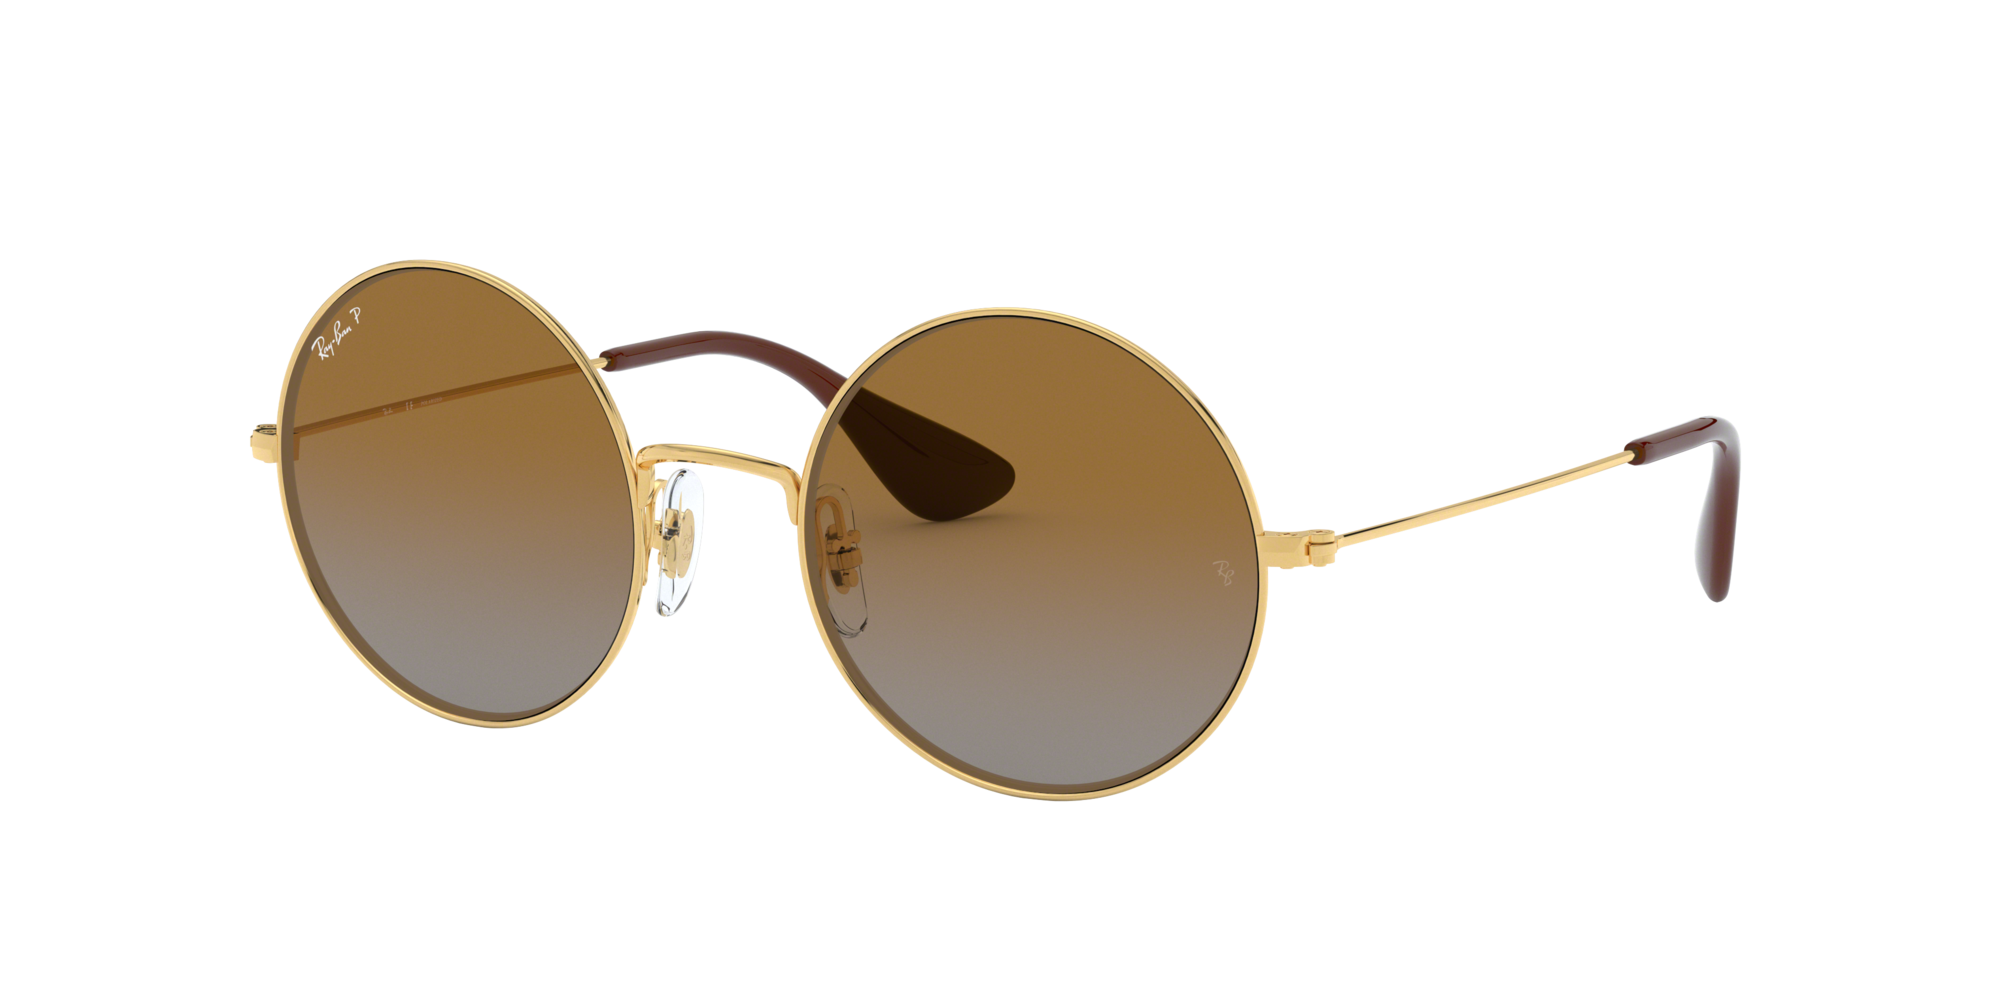 Ray Ban Unisex  RB3592 JA-JO -  Frame color: Or, Lens color: Marron, Size 55-20/145